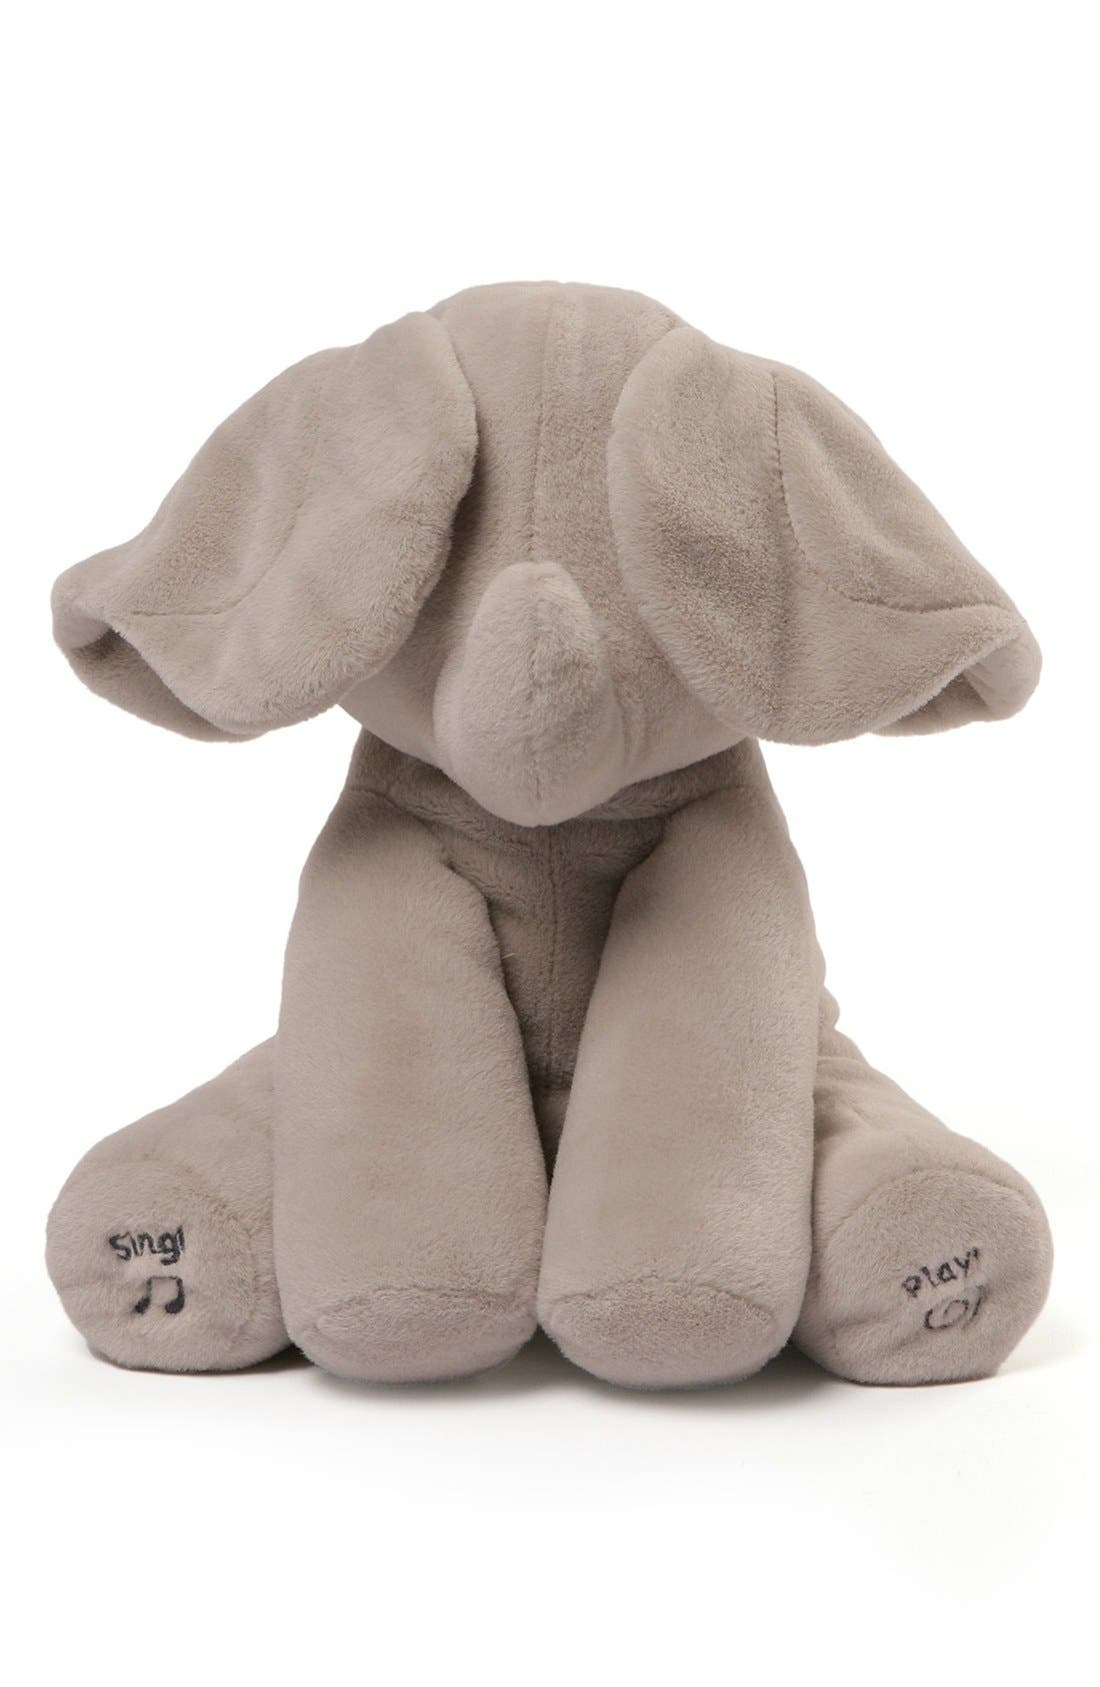 GUND, Baby Gund 'Flappy The Elephant' Musical Elephant, Alternate thumbnail 3, color, GREY